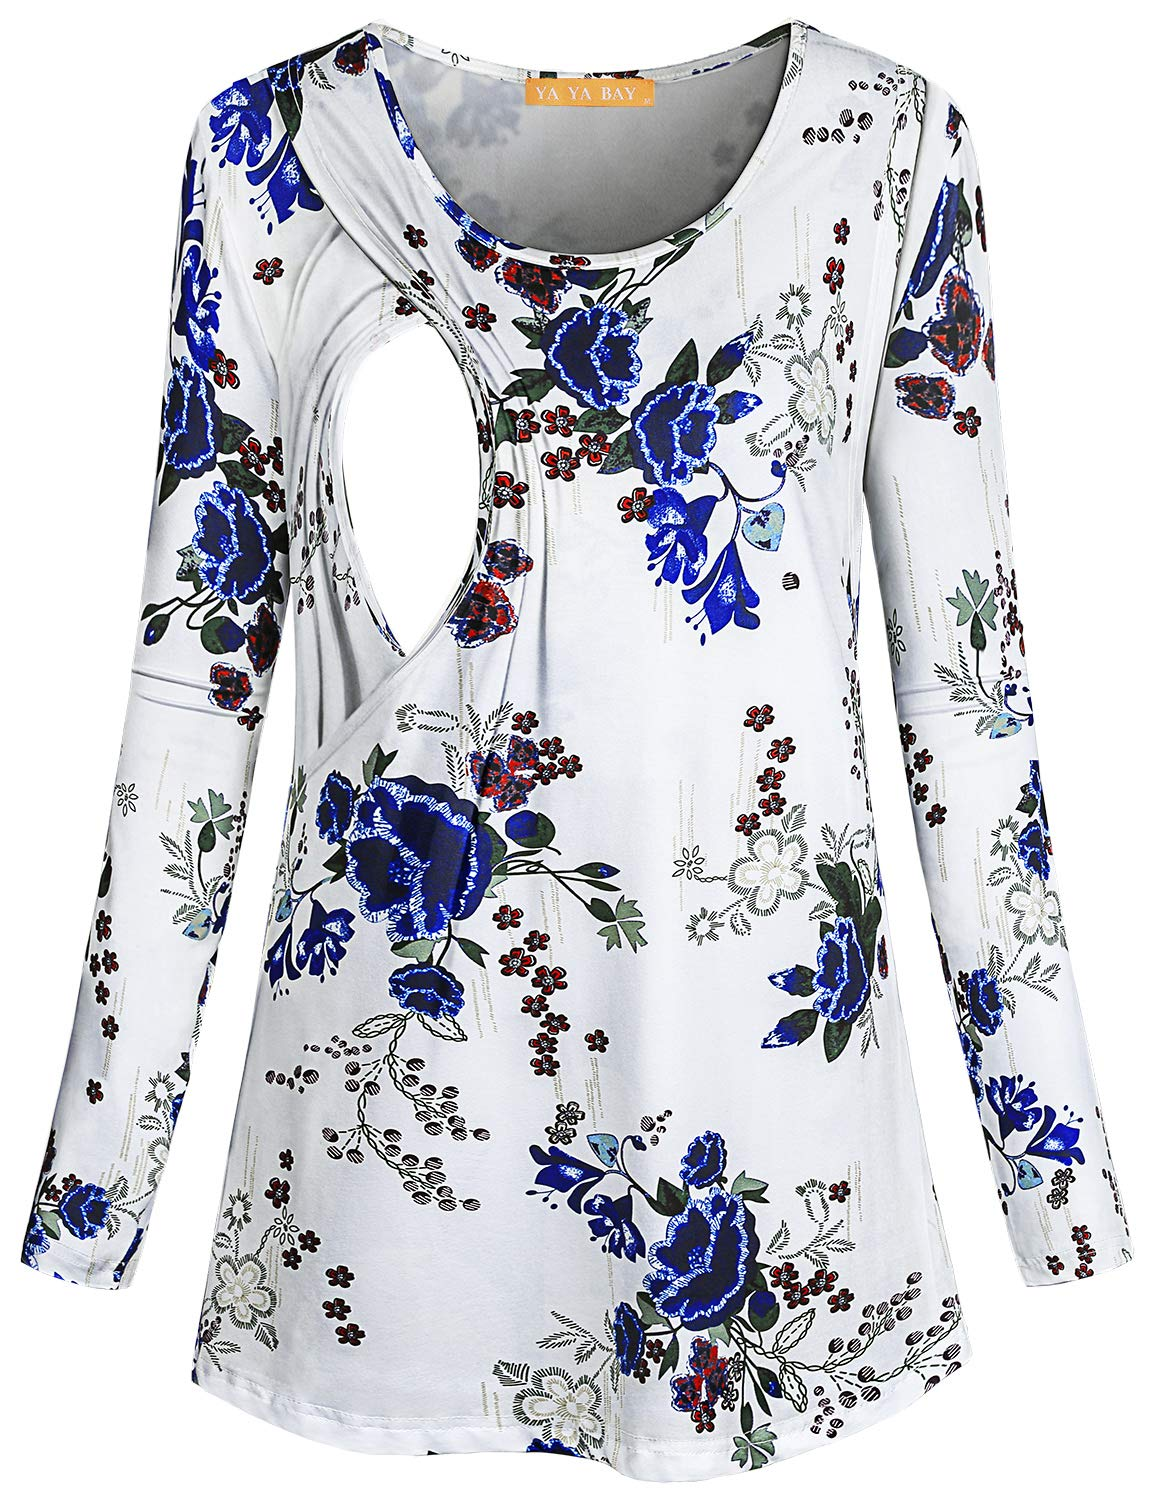 YaYa Bay Pregnancy Shirt, Laides Crew Neck Long Sleeve Side Slits Casual Loose Fitted Flowy Nursing Tunic Tops for Breastfeeding Knitting Fall Maternity Sleepwear White Floral L